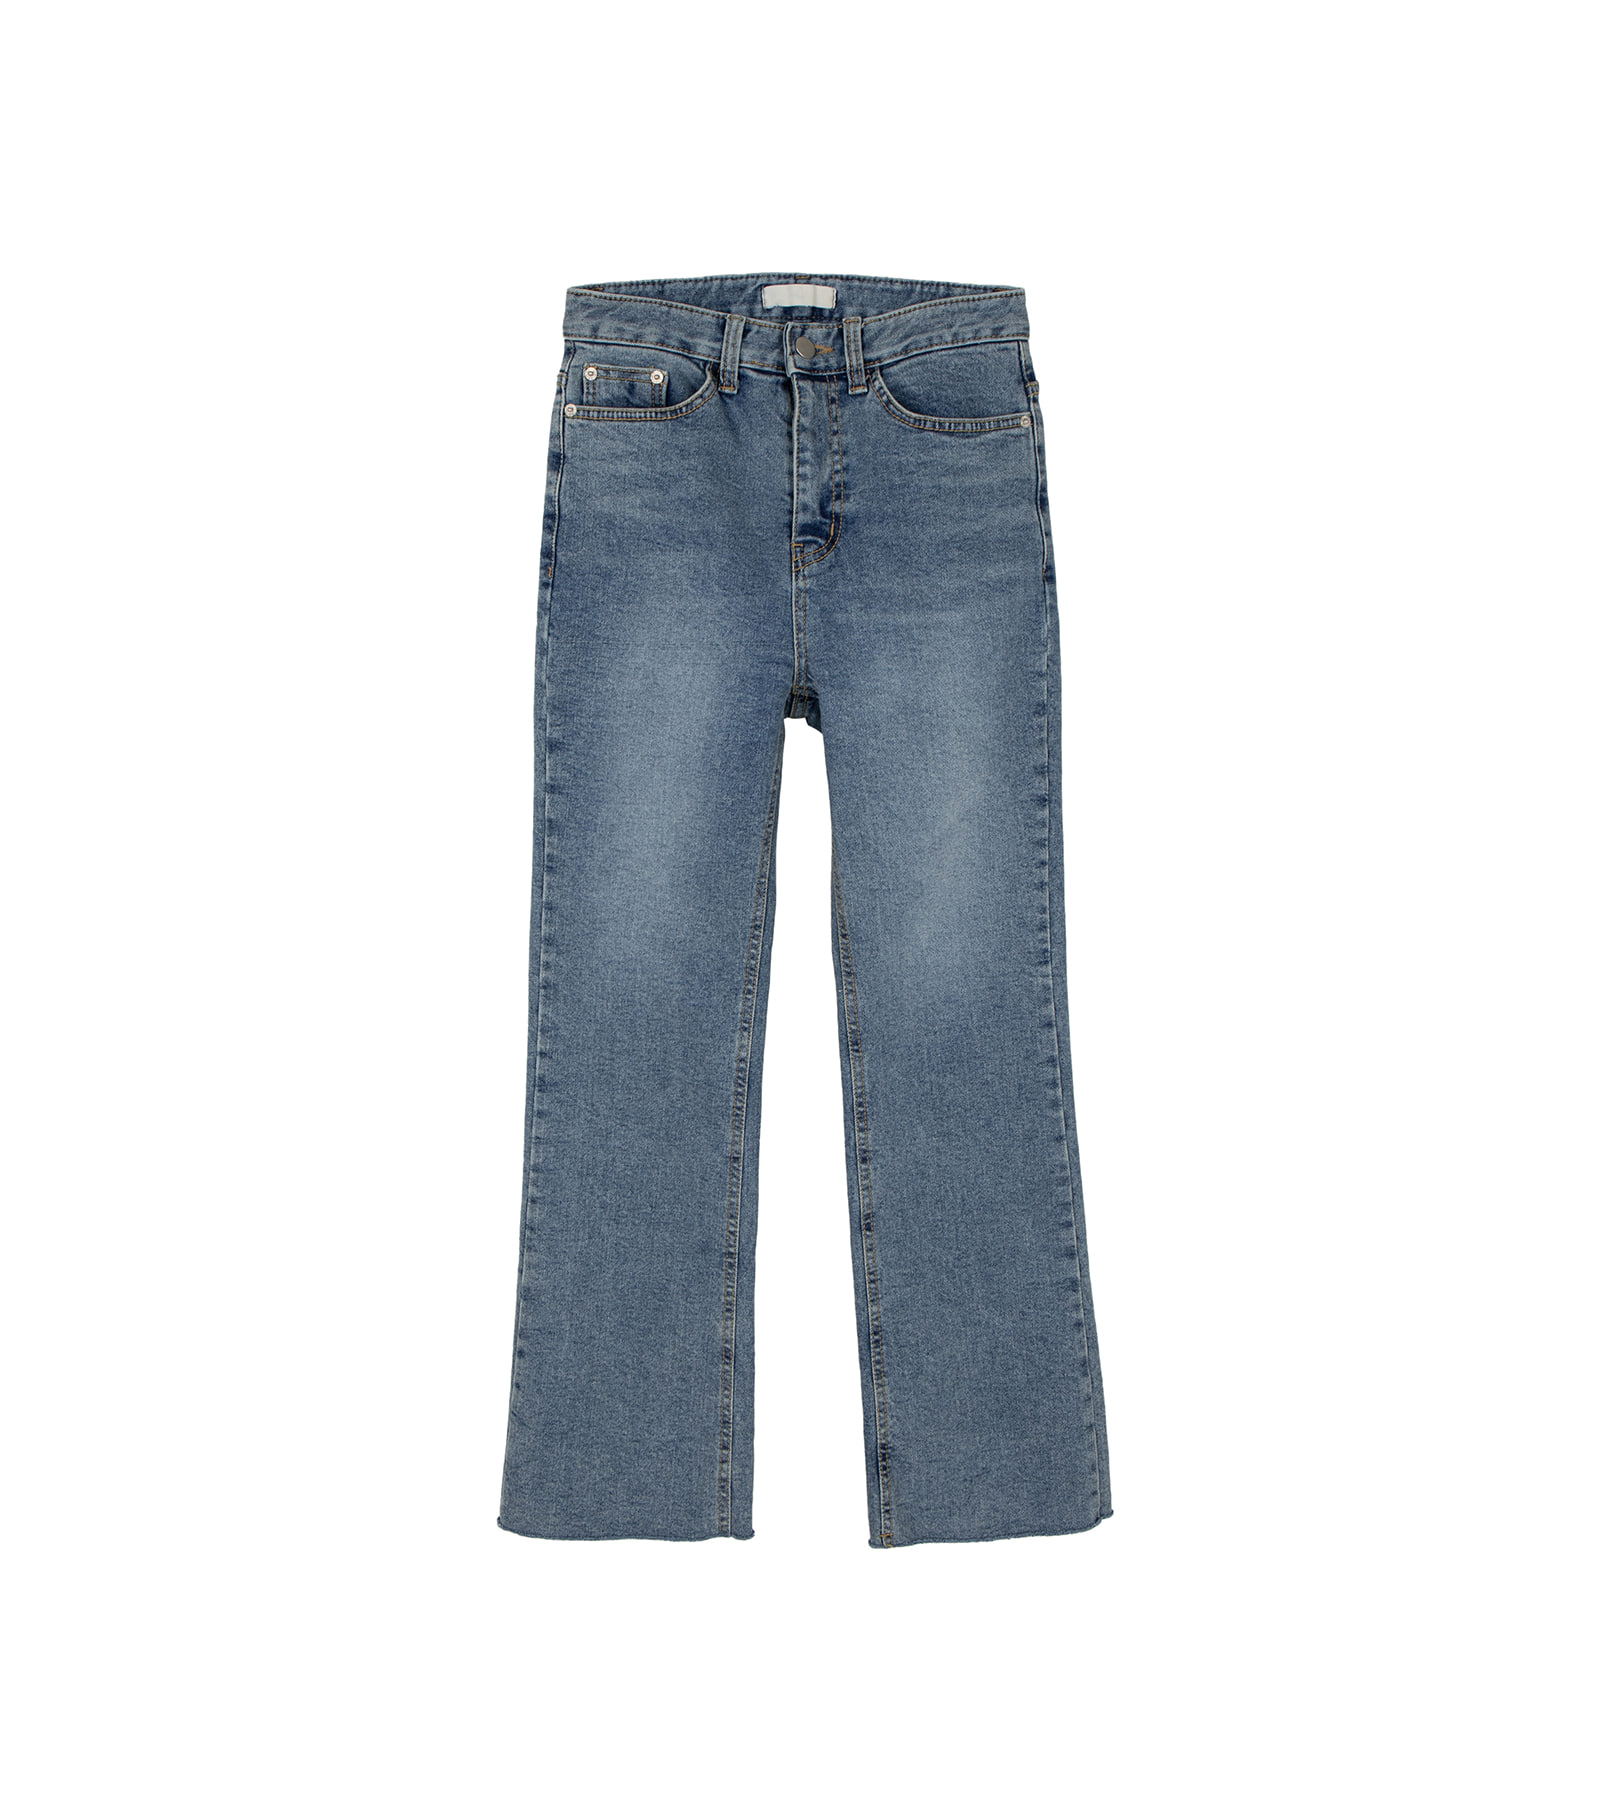 Bridge brushed bootcut jeans